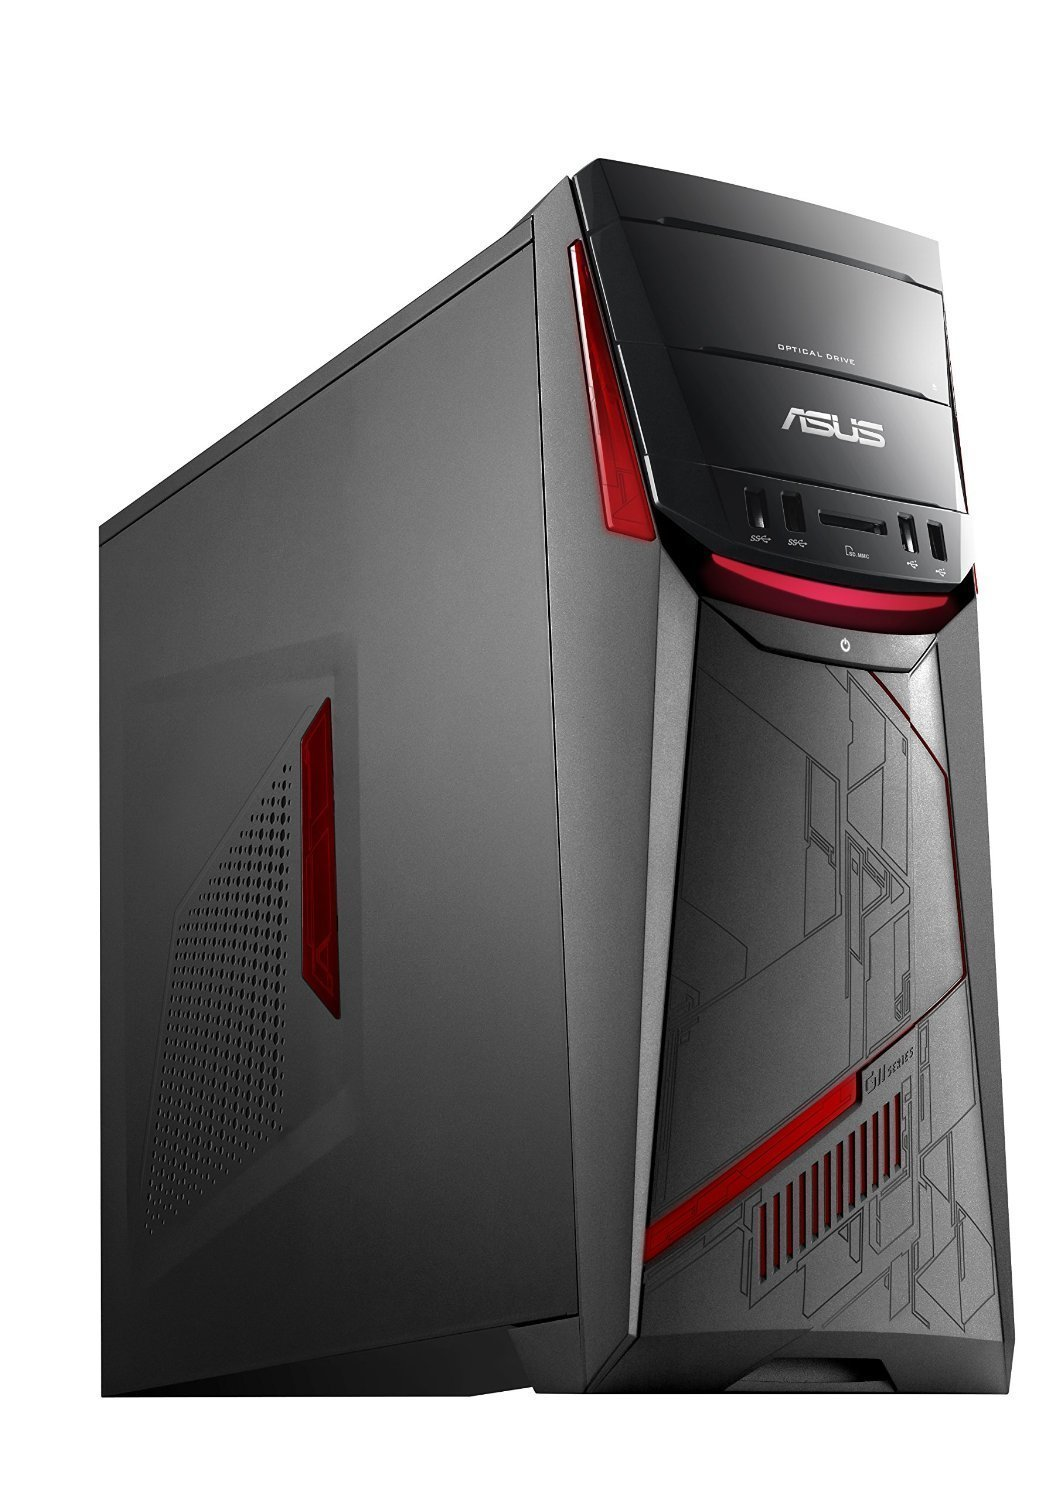 ... G11CD Gaming Desktop - Intel Core i5-6400 6th Generation Quad-Core up to 3.3 GHz, 8GB DDR4 Memory, 2TB Solid State Drive, 2GB Nvidia GeForce GTX 960, ...